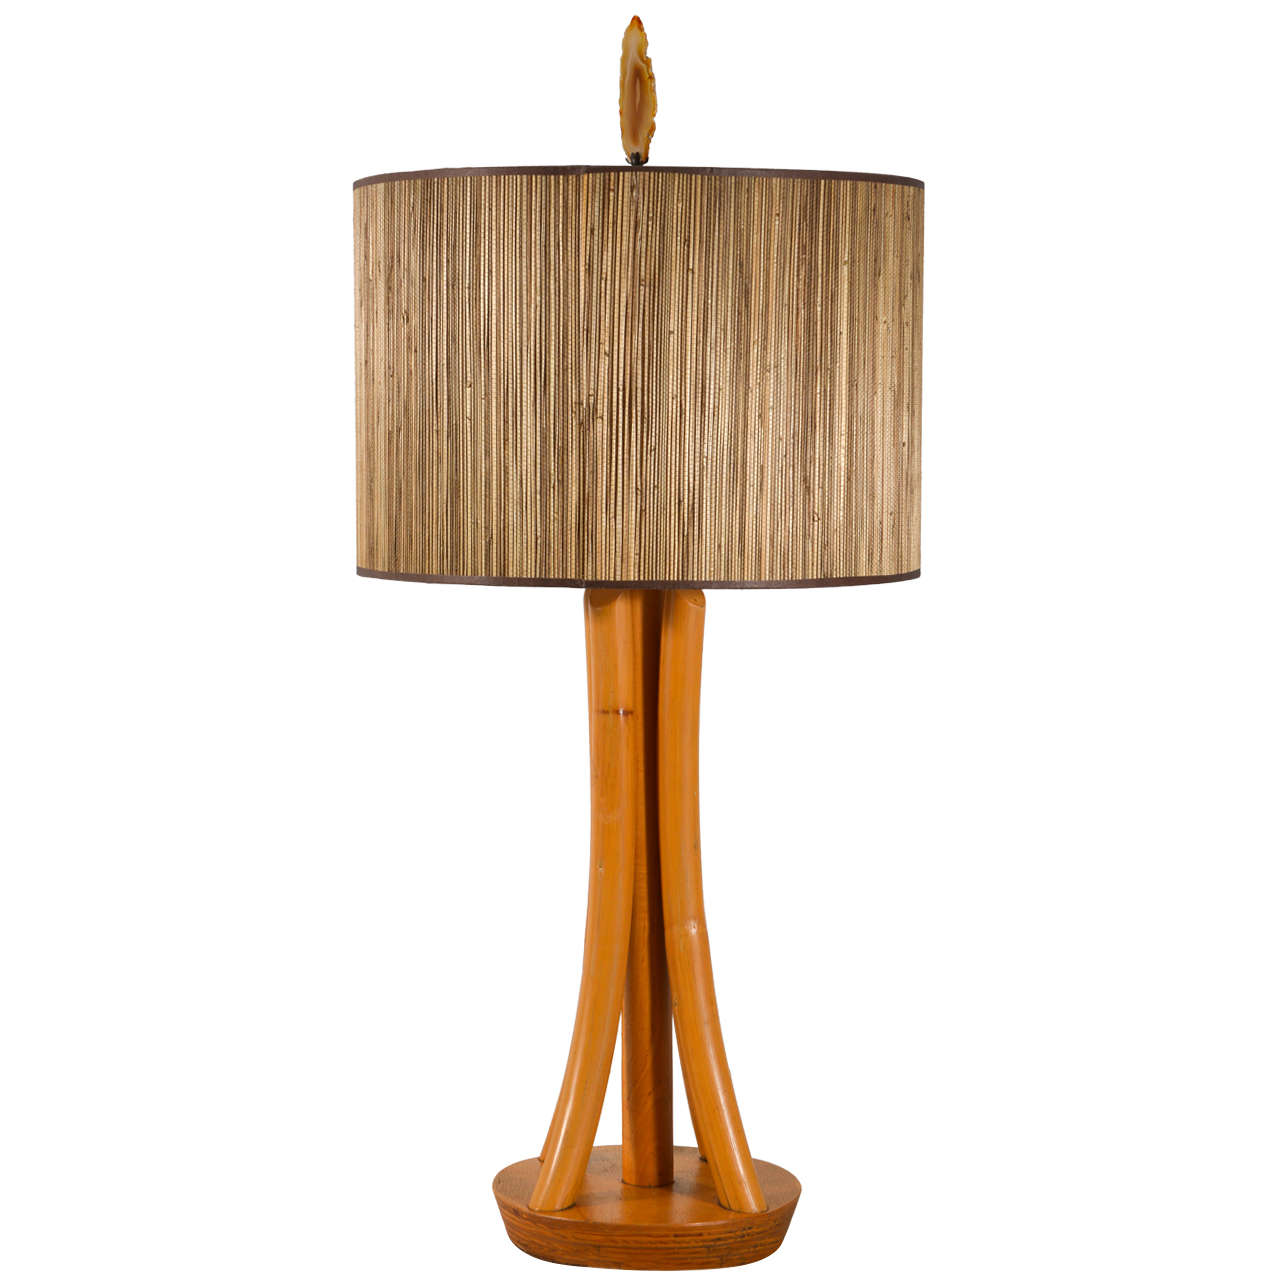 thonet style 1950s bentwood table lamp for sale at 1stdibs. Black Bedroom Furniture Sets. Home Design Ideas